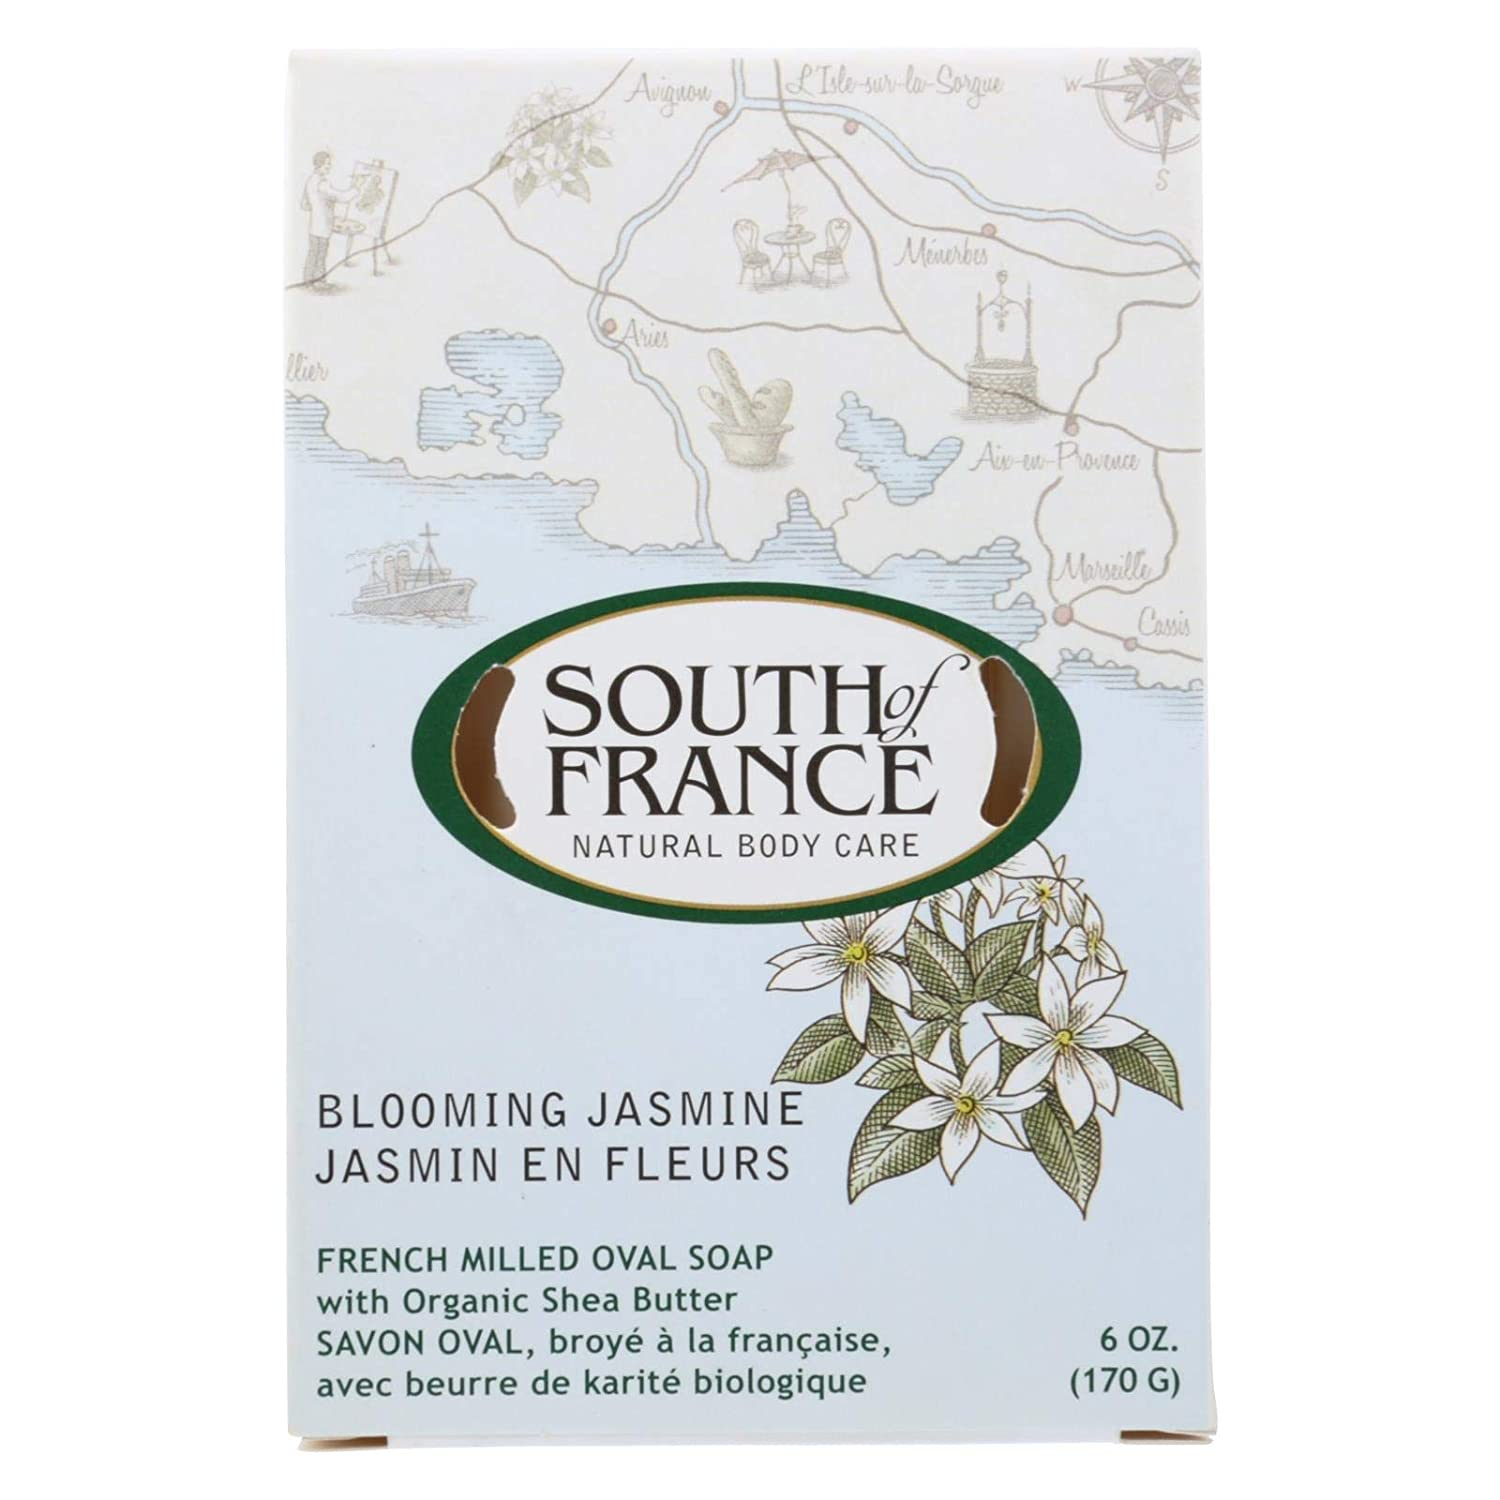 French Milled Oval Soap Blooming Jasmine South of France 6 oz Bar Soap